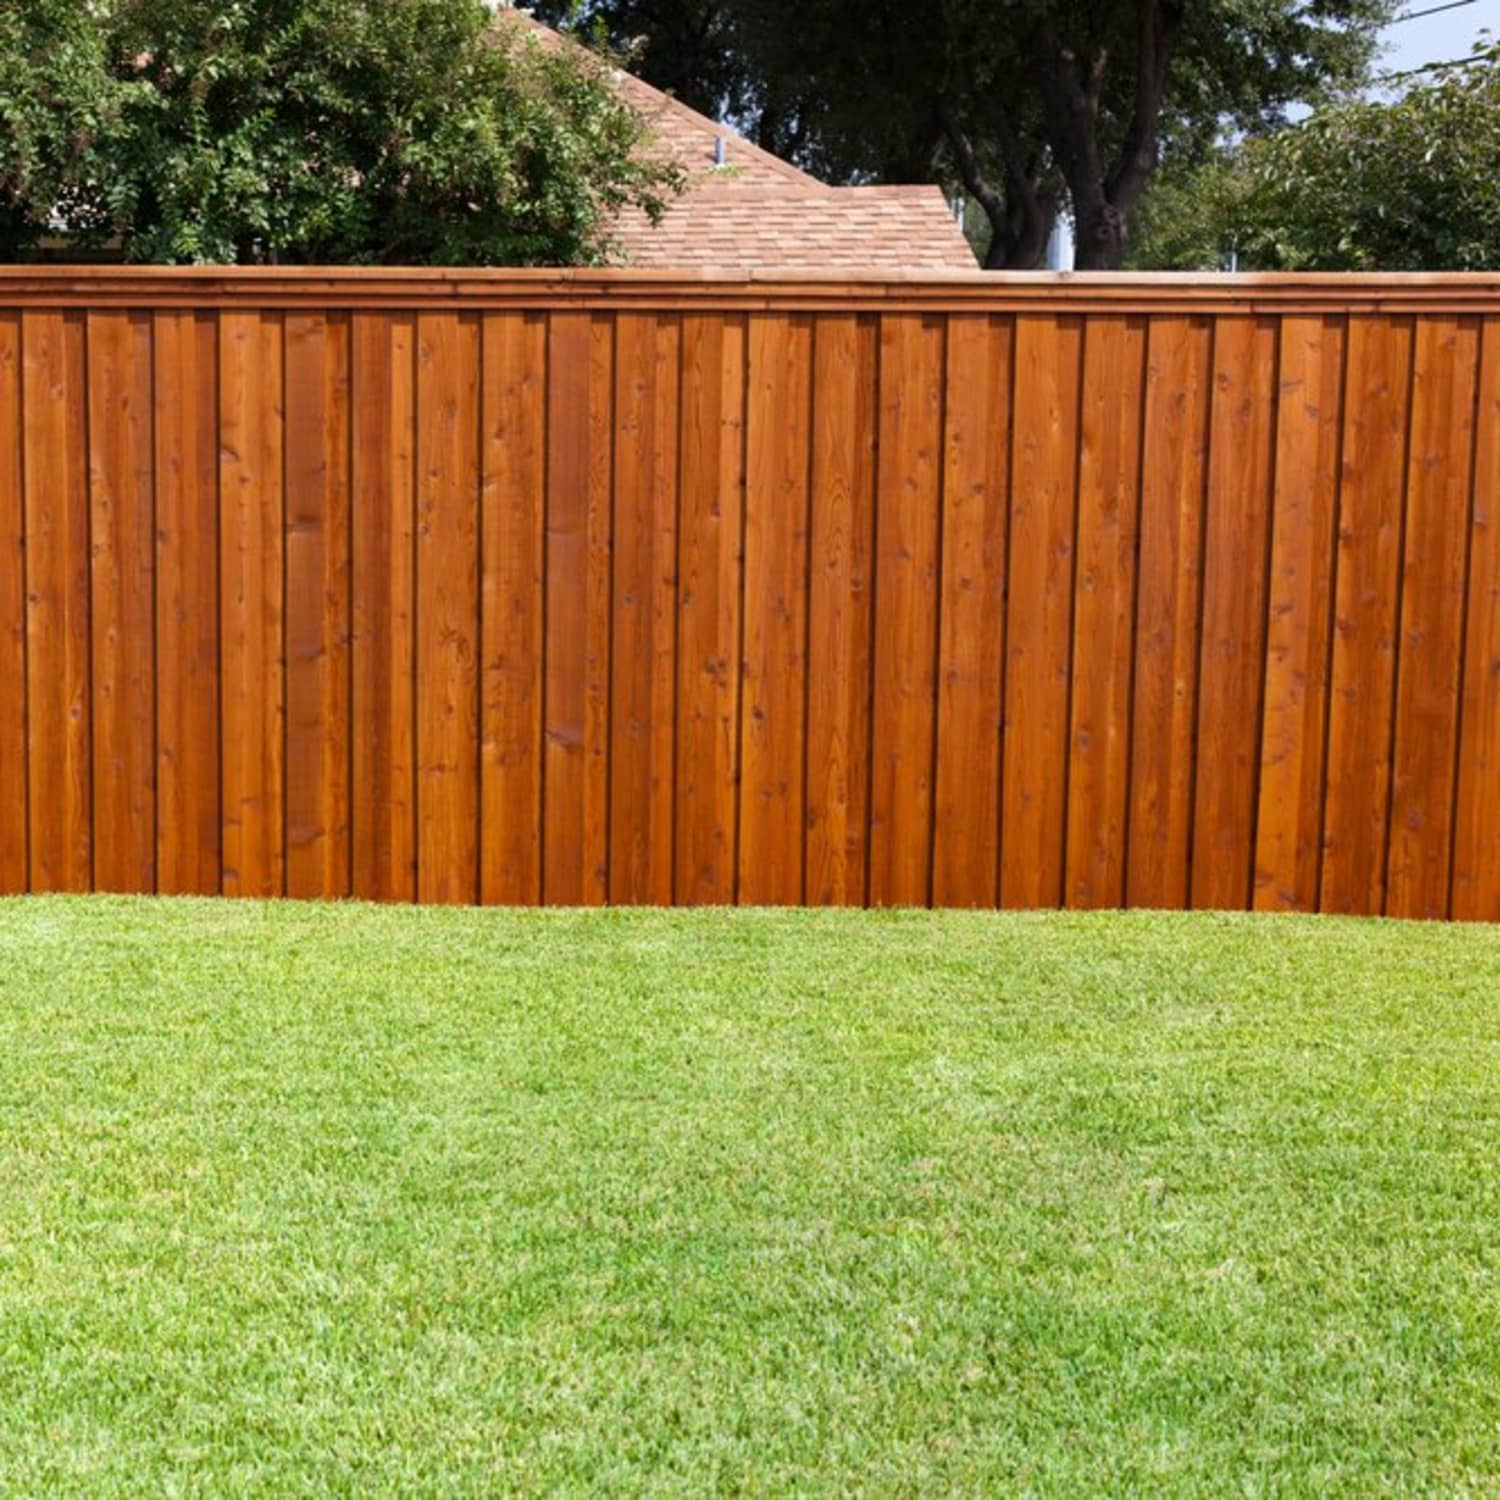 How Much Did It Cost To Build A Wooden Privacy Fence